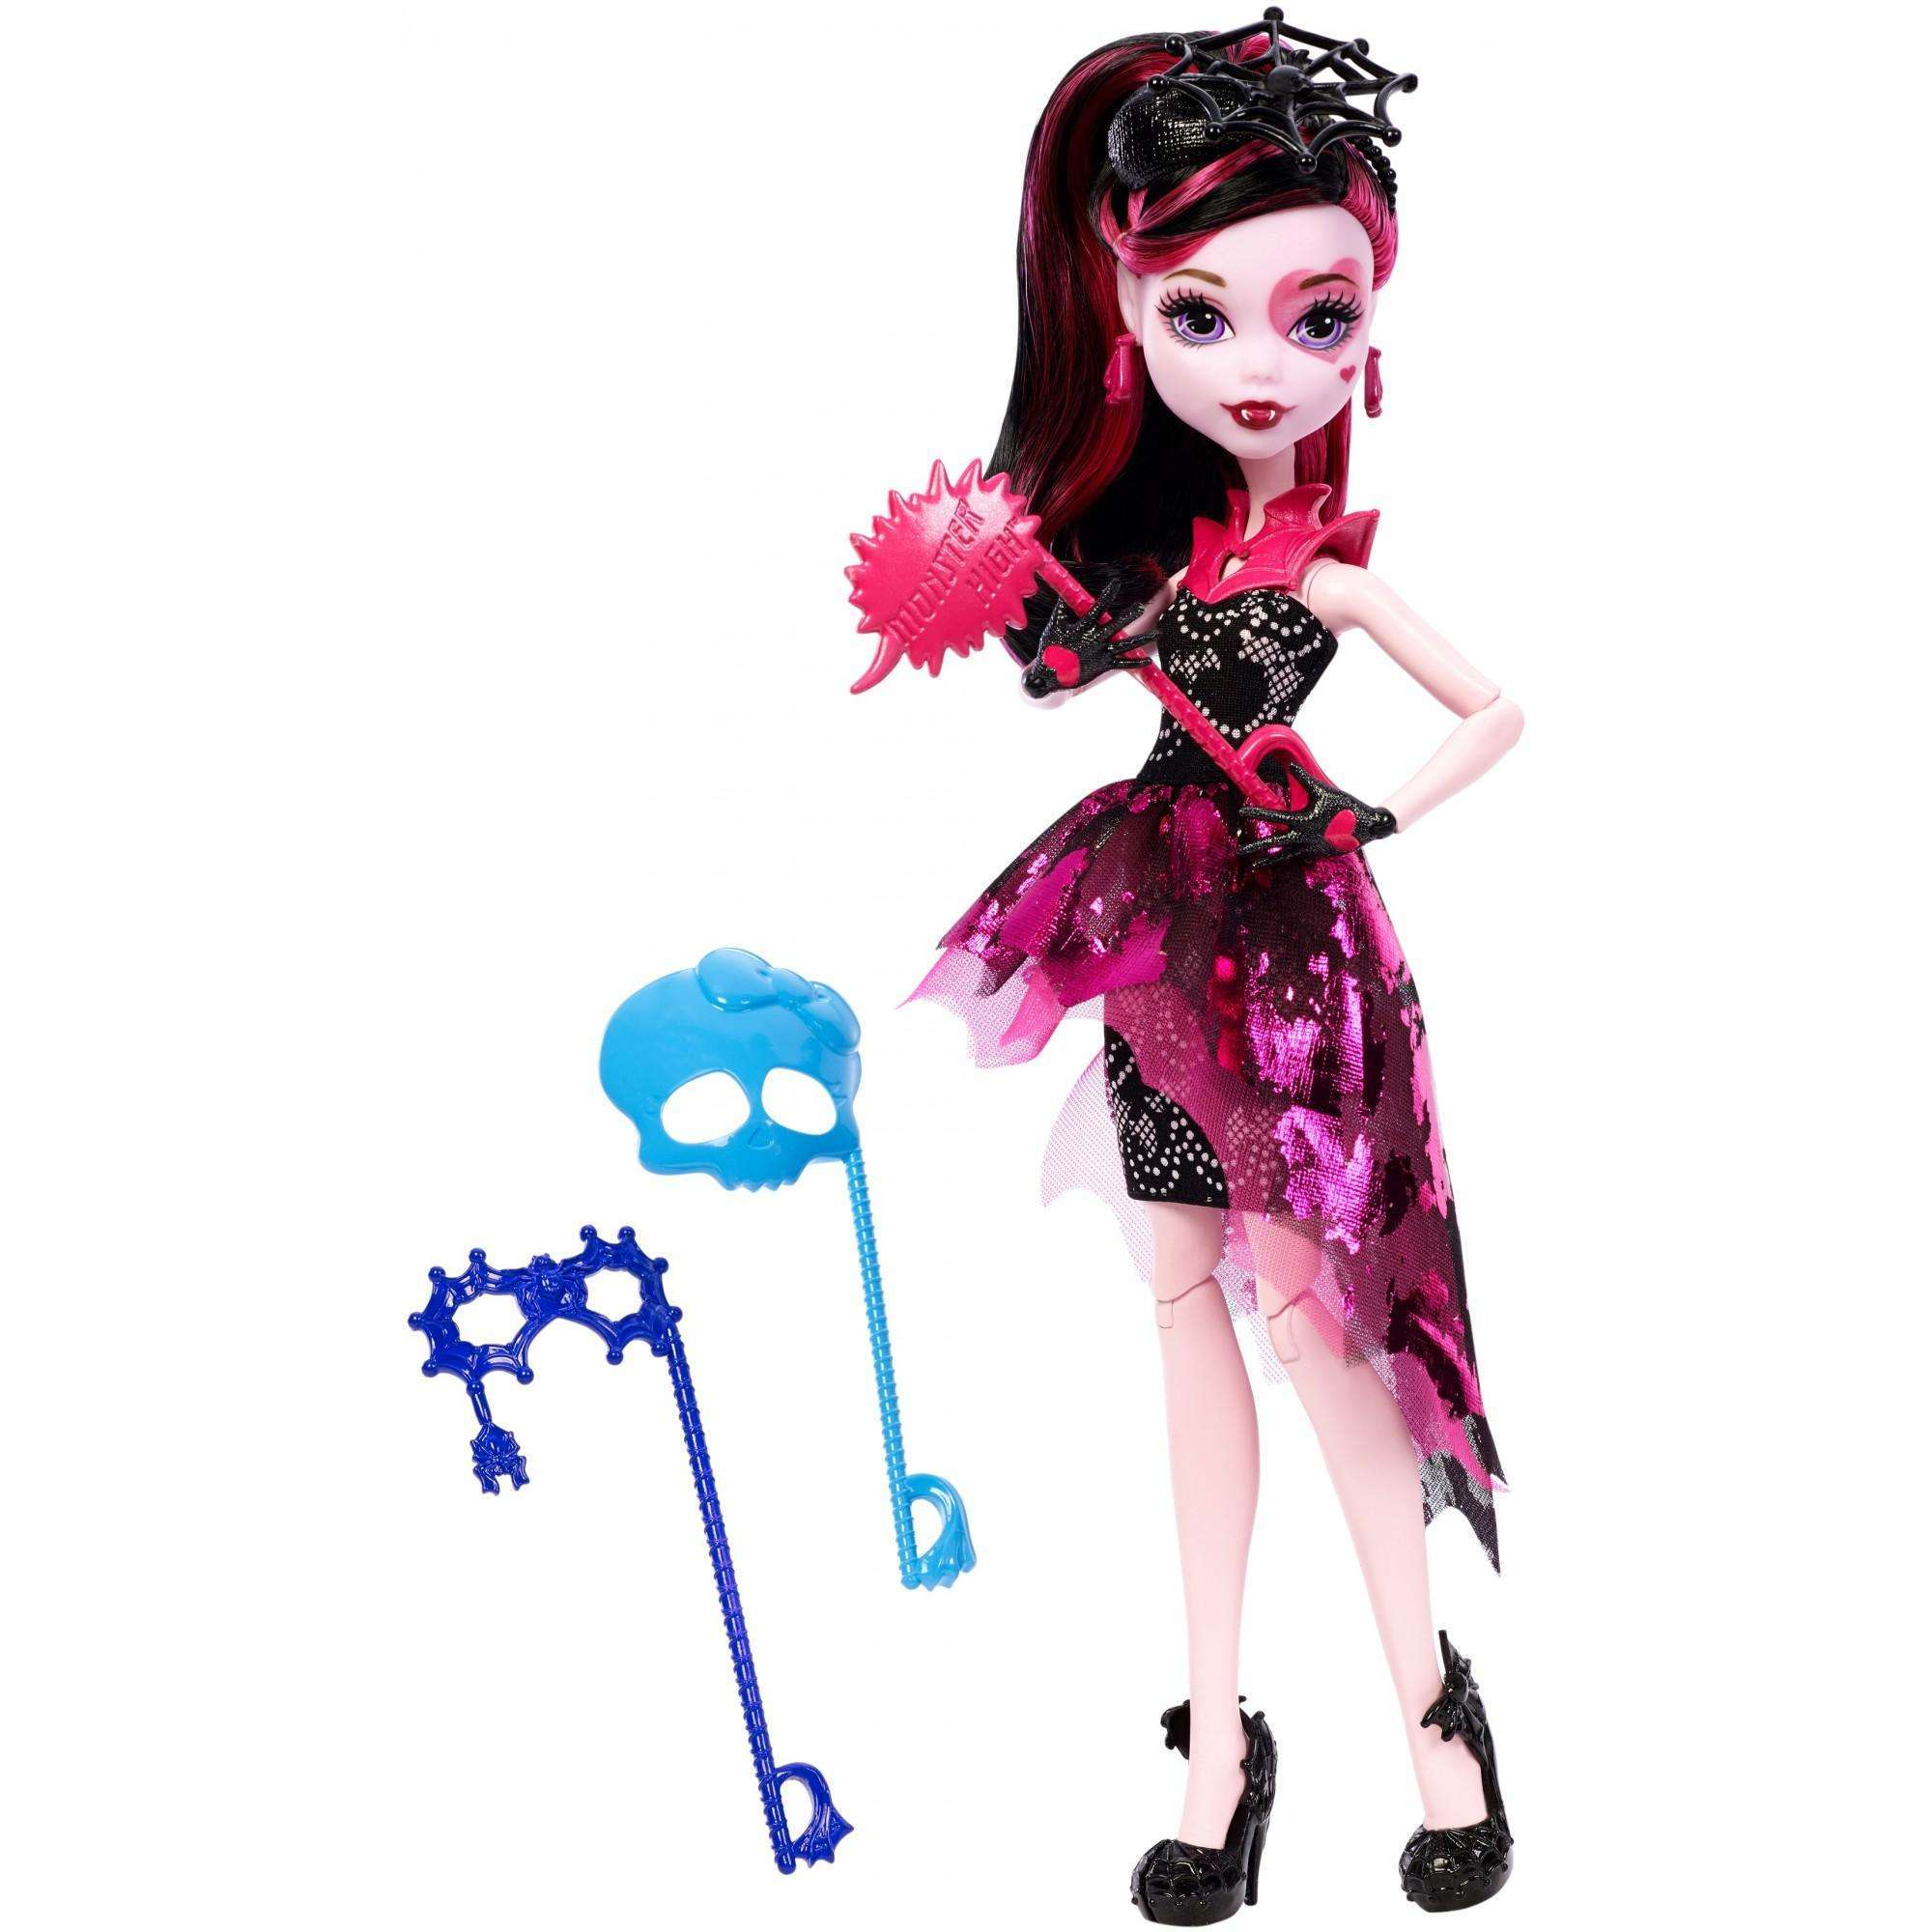 Monster High Welcome to Monster High Dance the Fright Away Draculaura Doll by Mattel